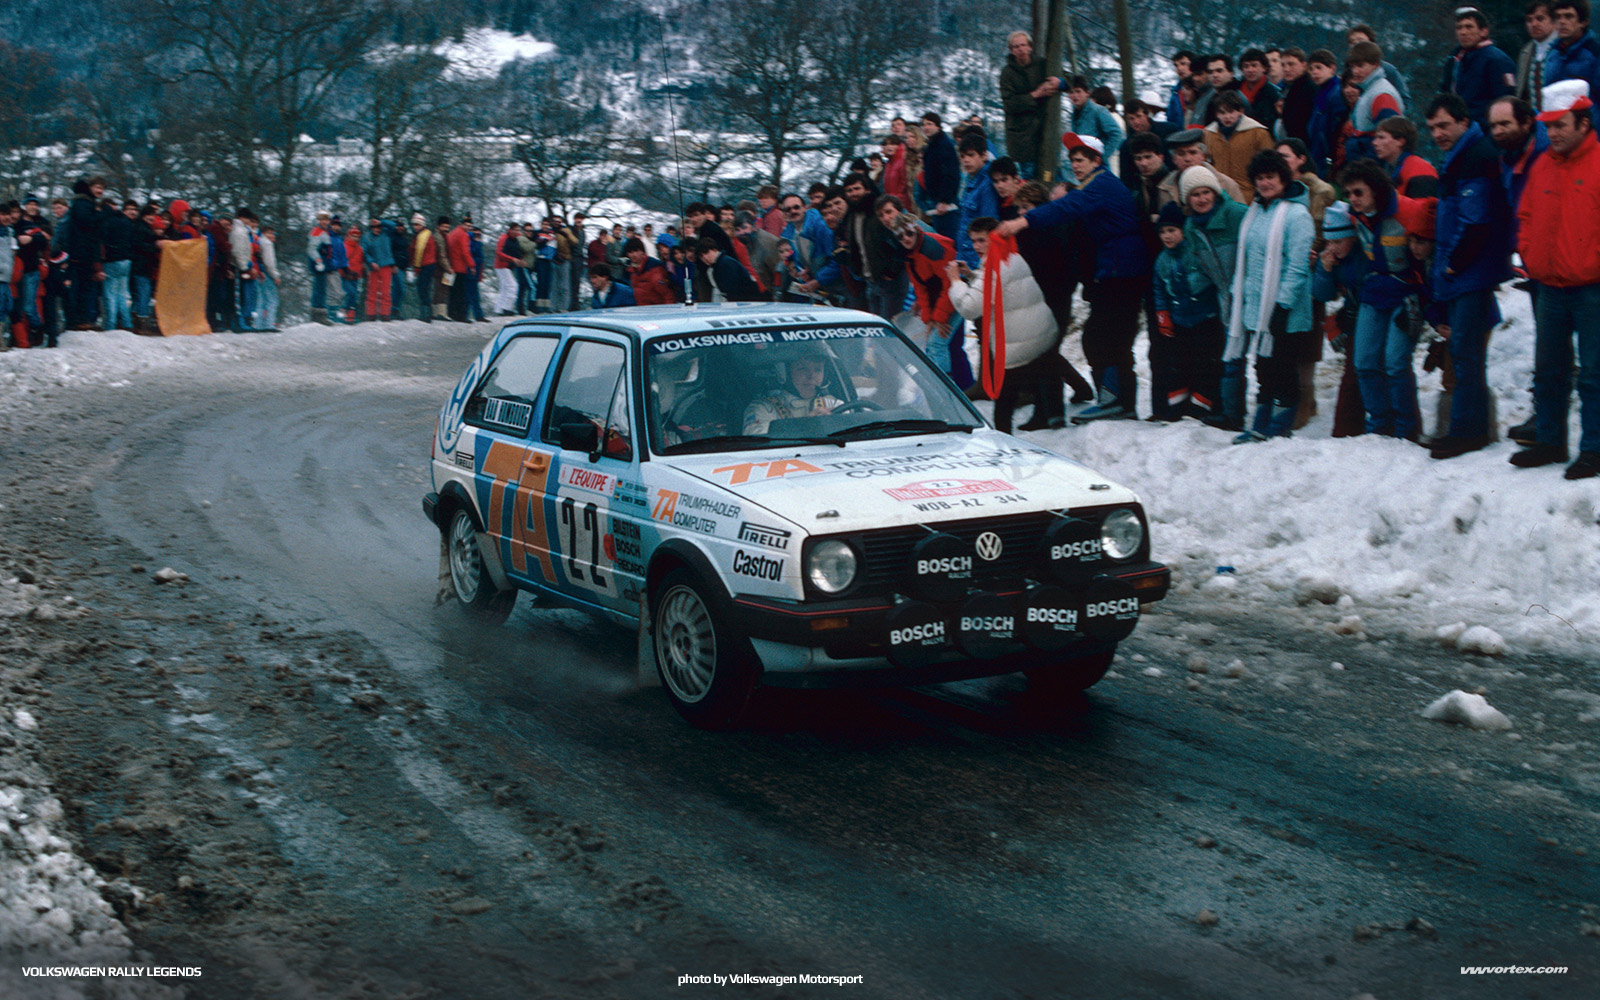 volkswagen-rally-legends-381